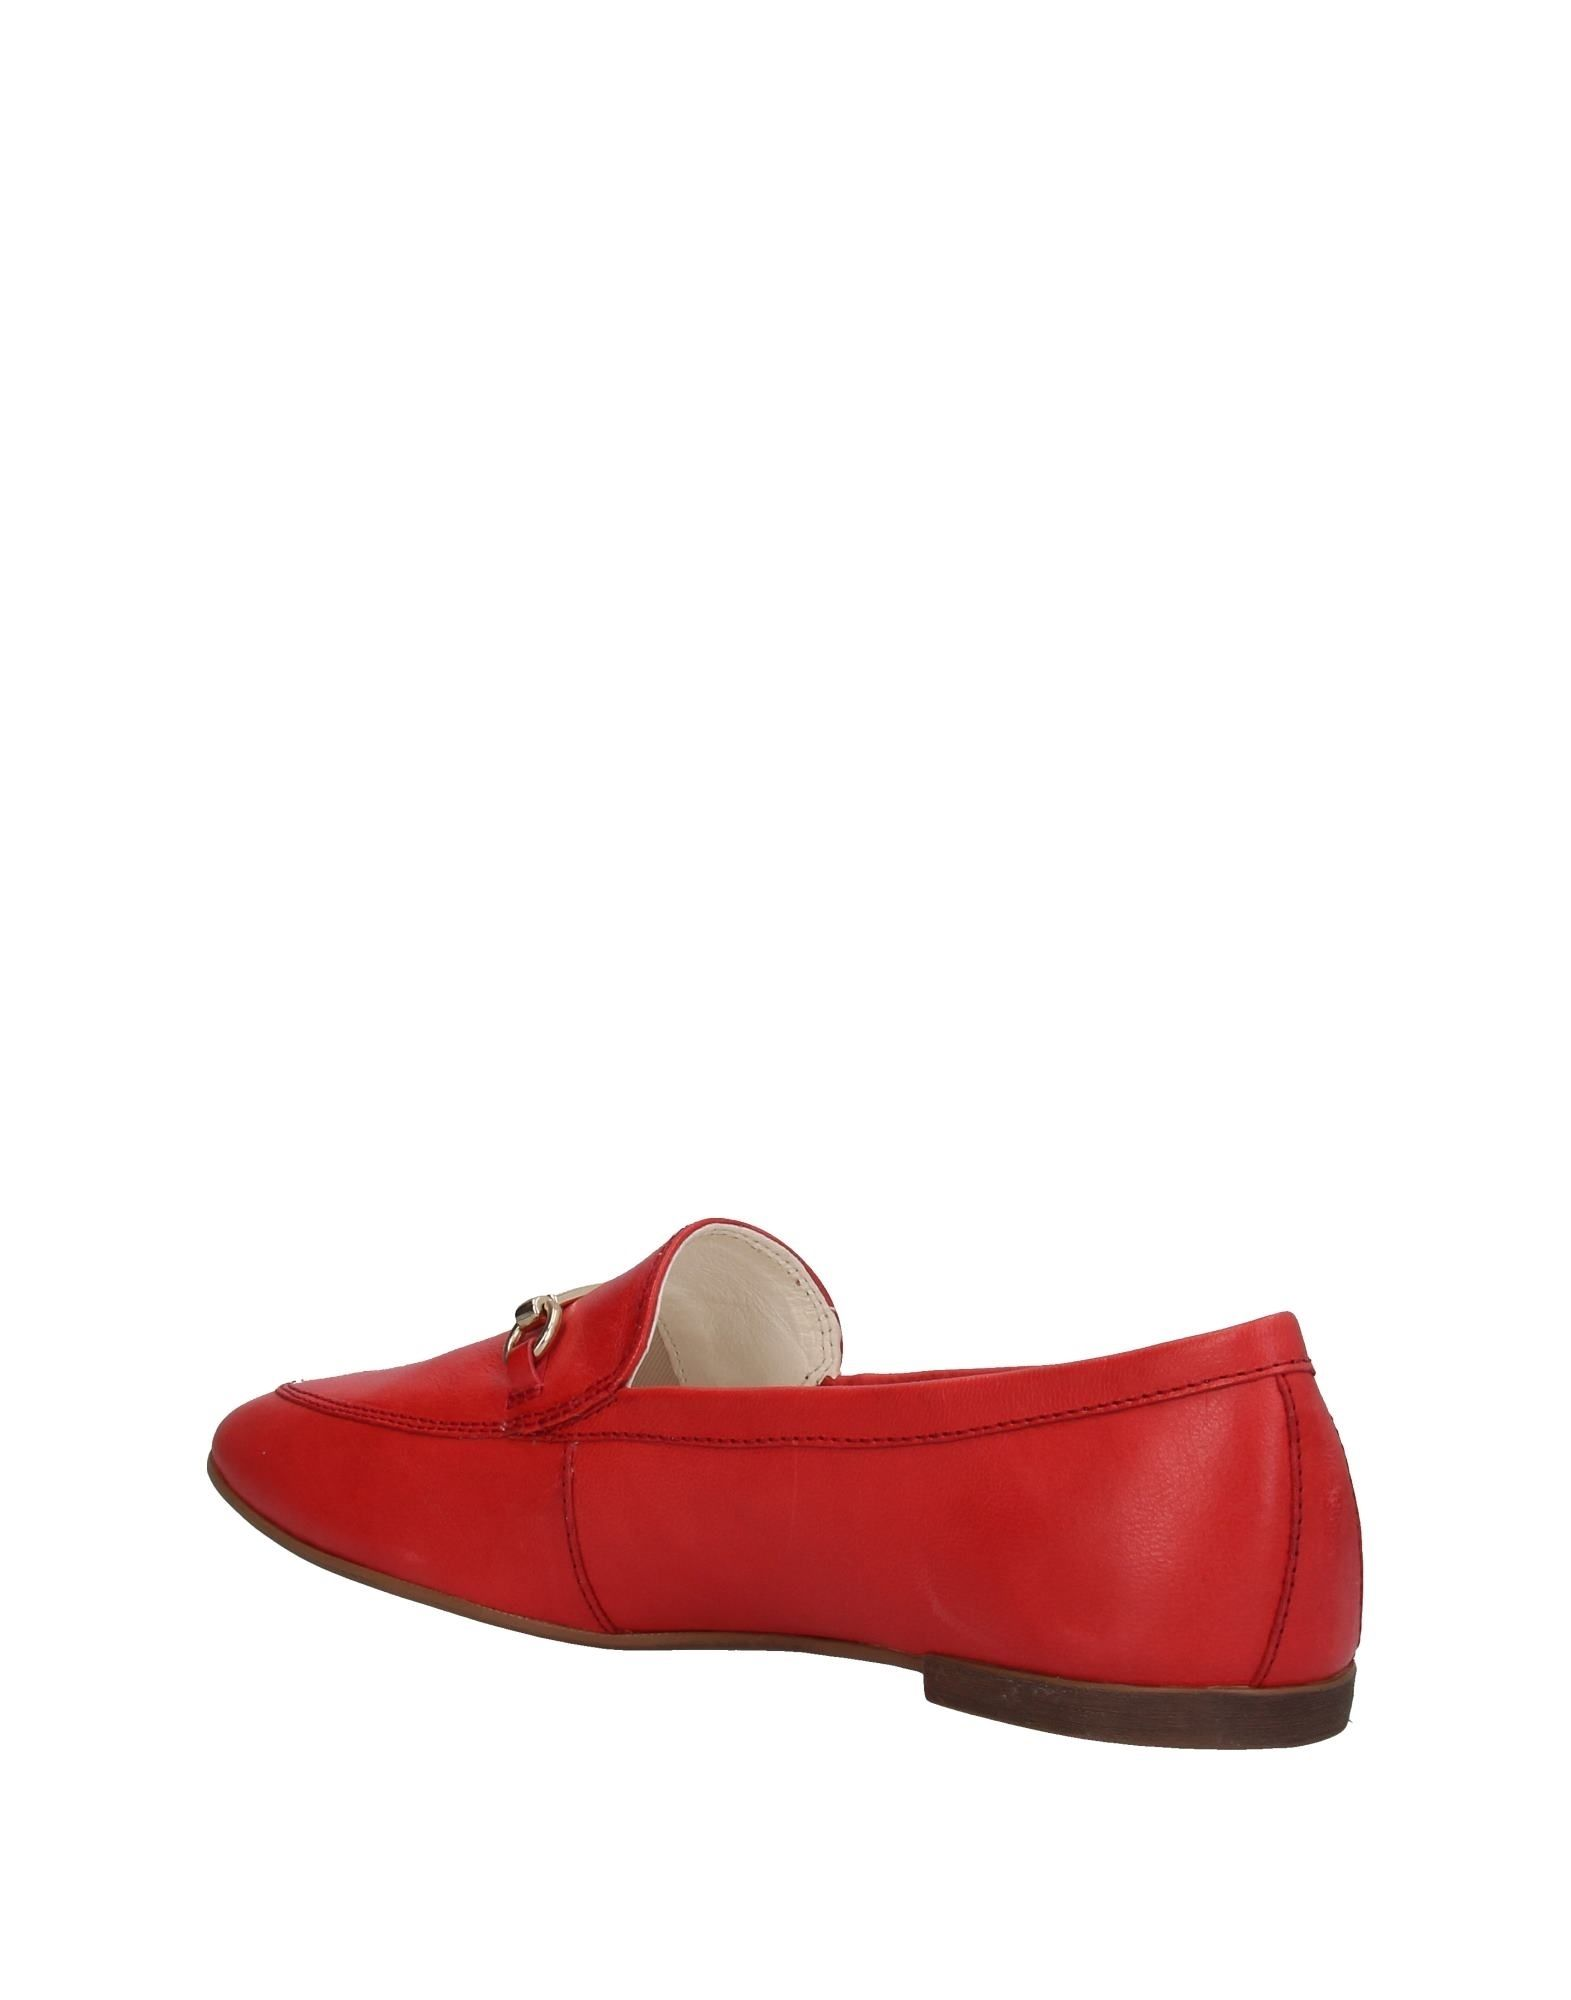 Mocassins Vagabond Shoemakers Femme - Mocassins Vagabond Shoemakers sur